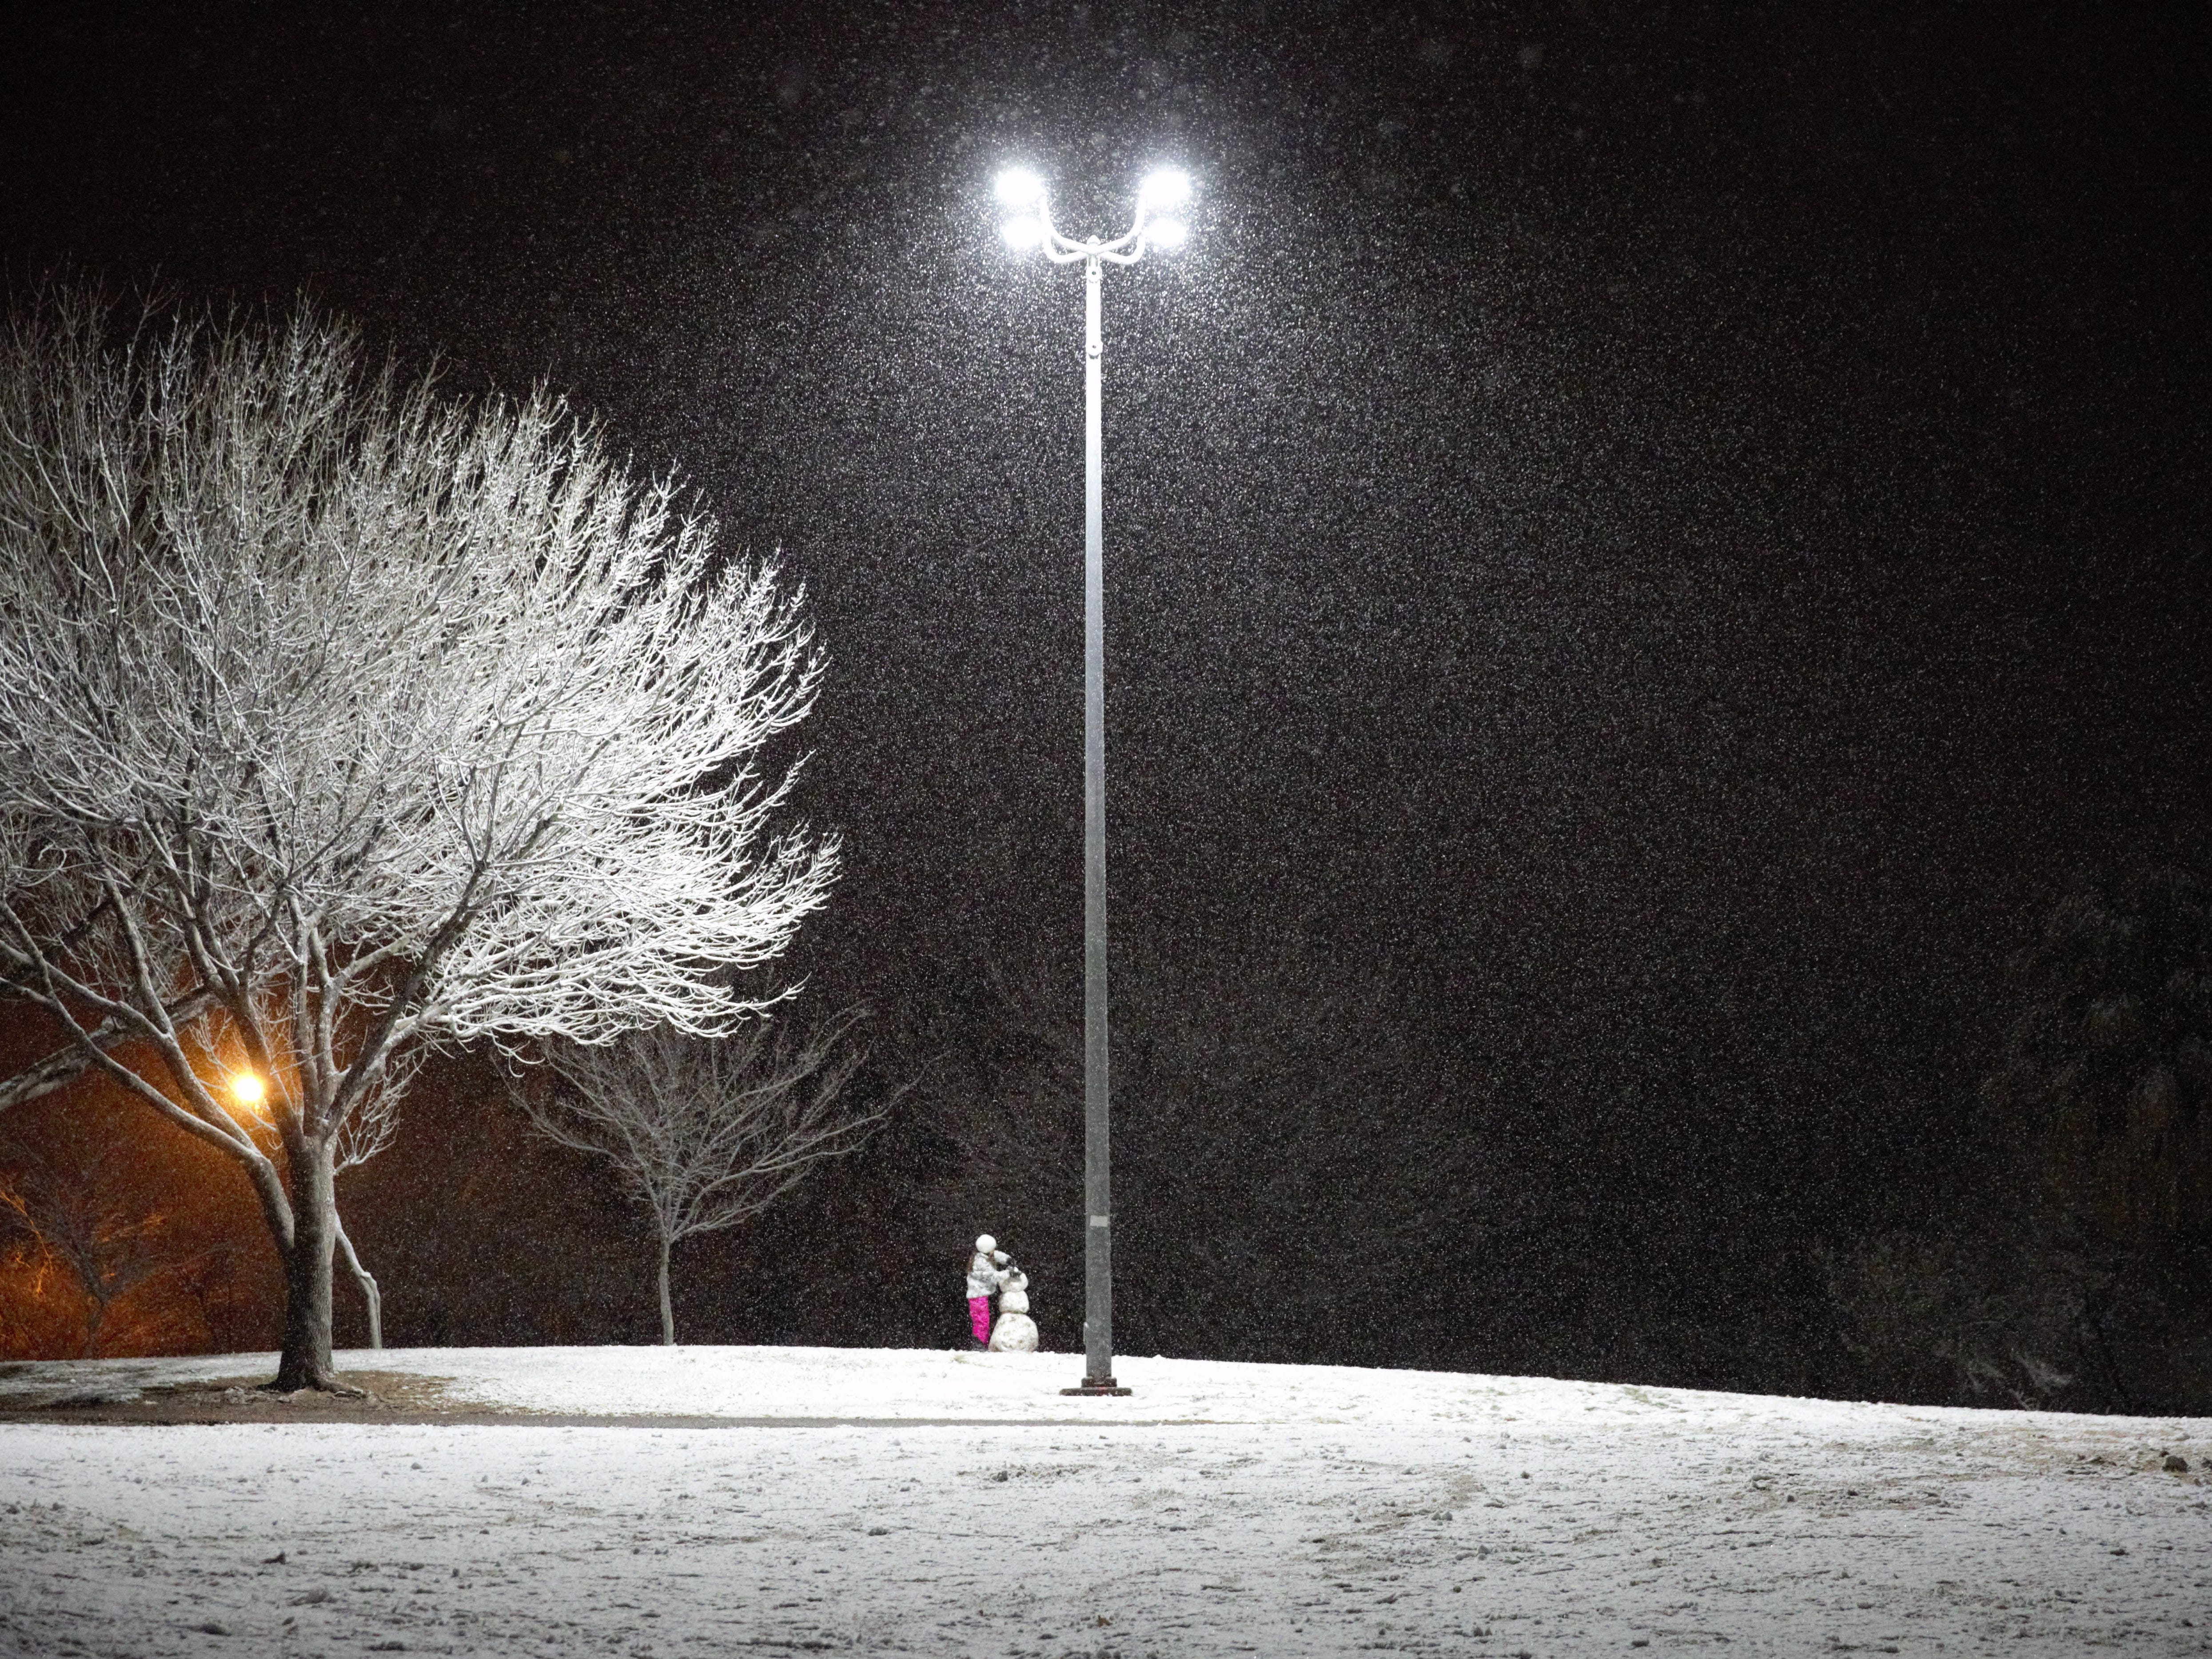 Maria Chavez, 9, of Las Cruces builds a snowman the night of Jan. 2, 2019 at Young Park.